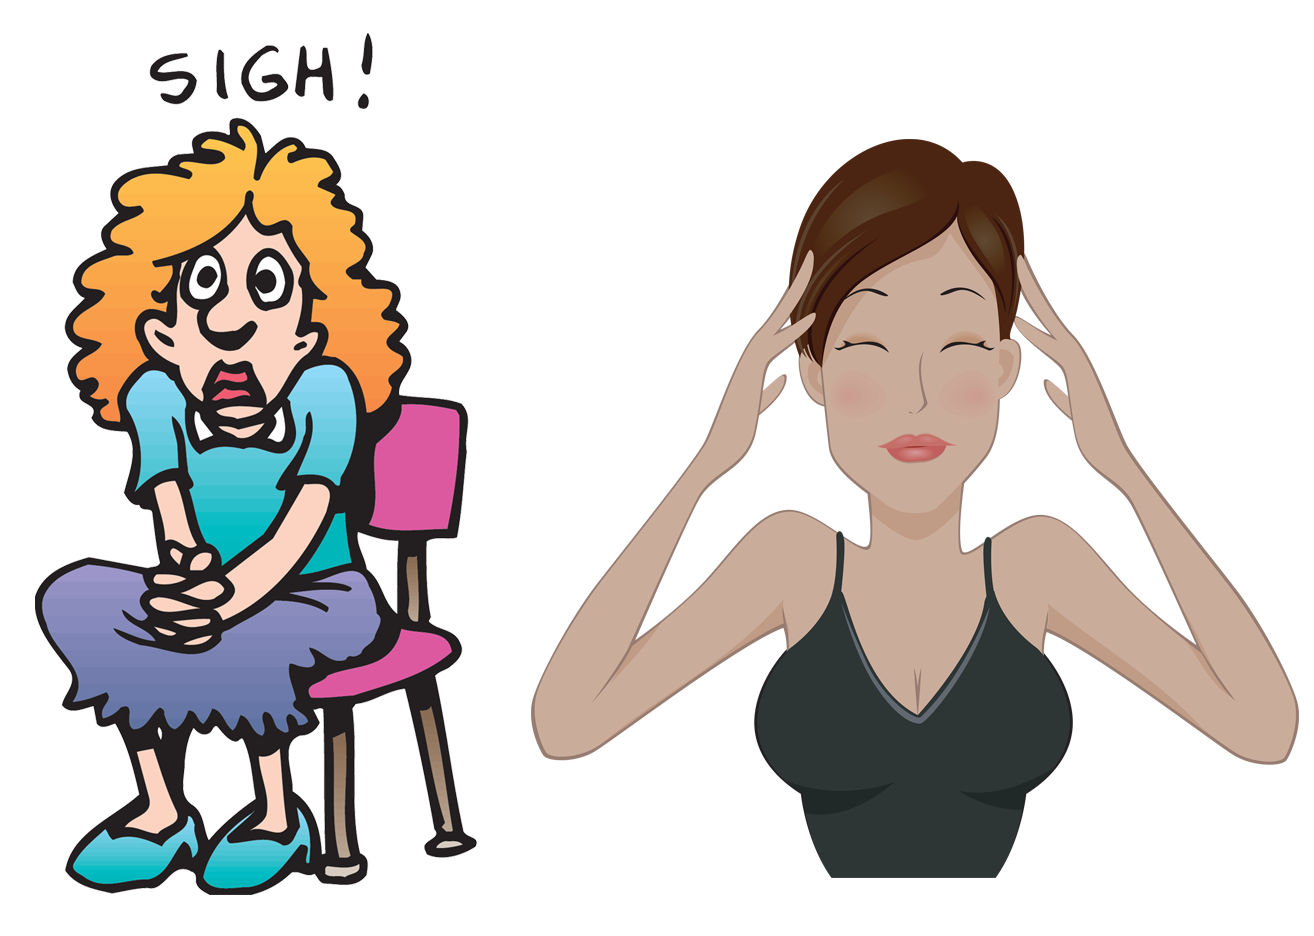 Stressed out teacher clipart graphic free library Stressed teacher clipart transparent background - ClipartFest graphic free library